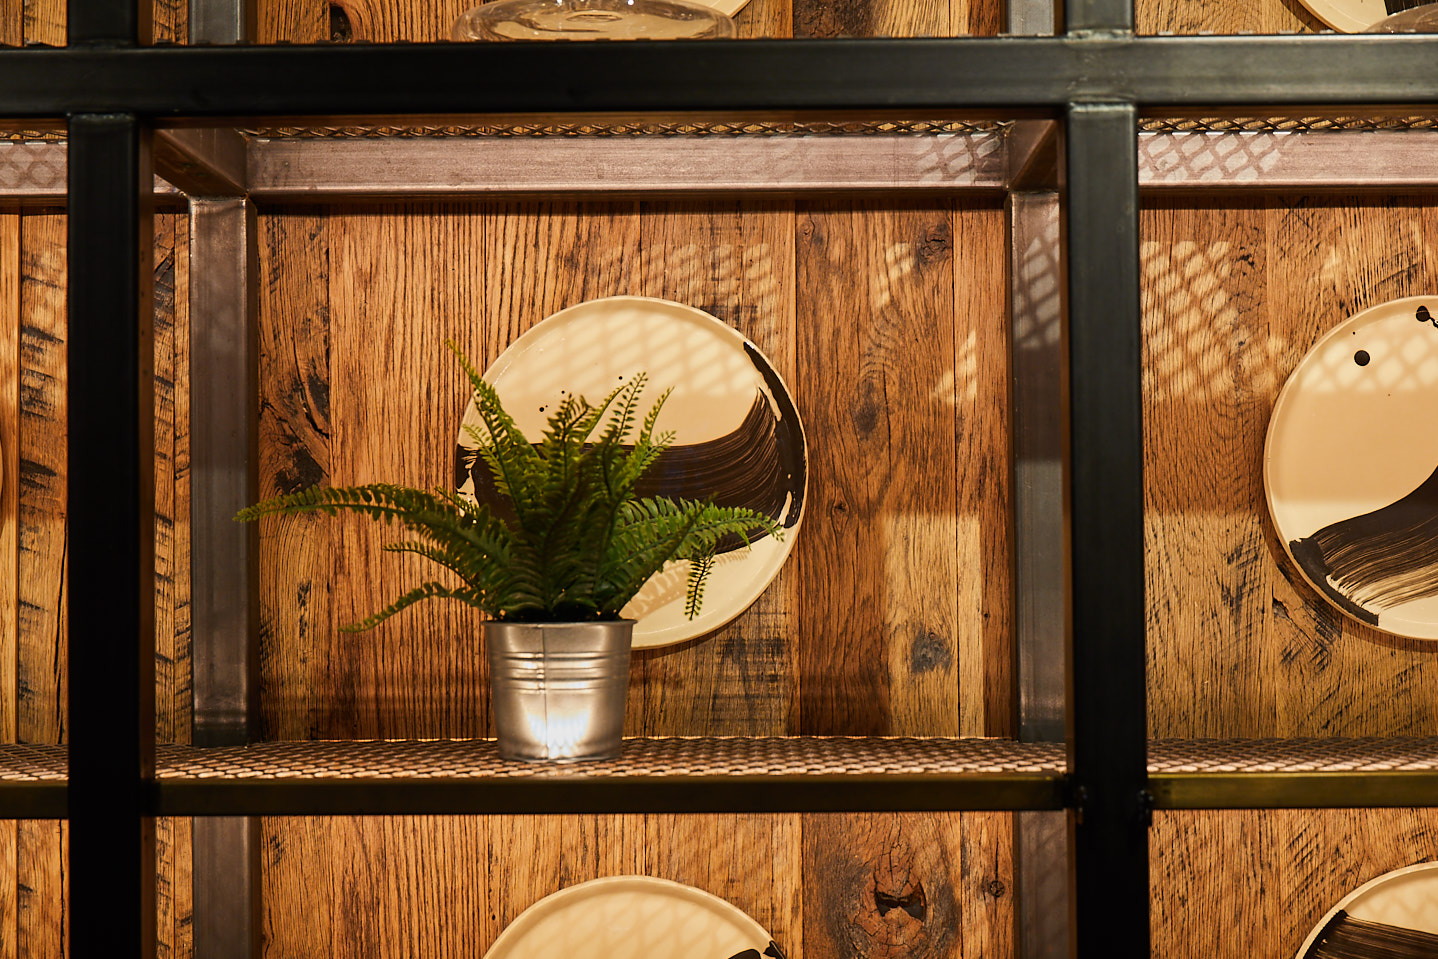 Plant sat on industrial metal shelves with reclaimed timber wall and mirror hung behind